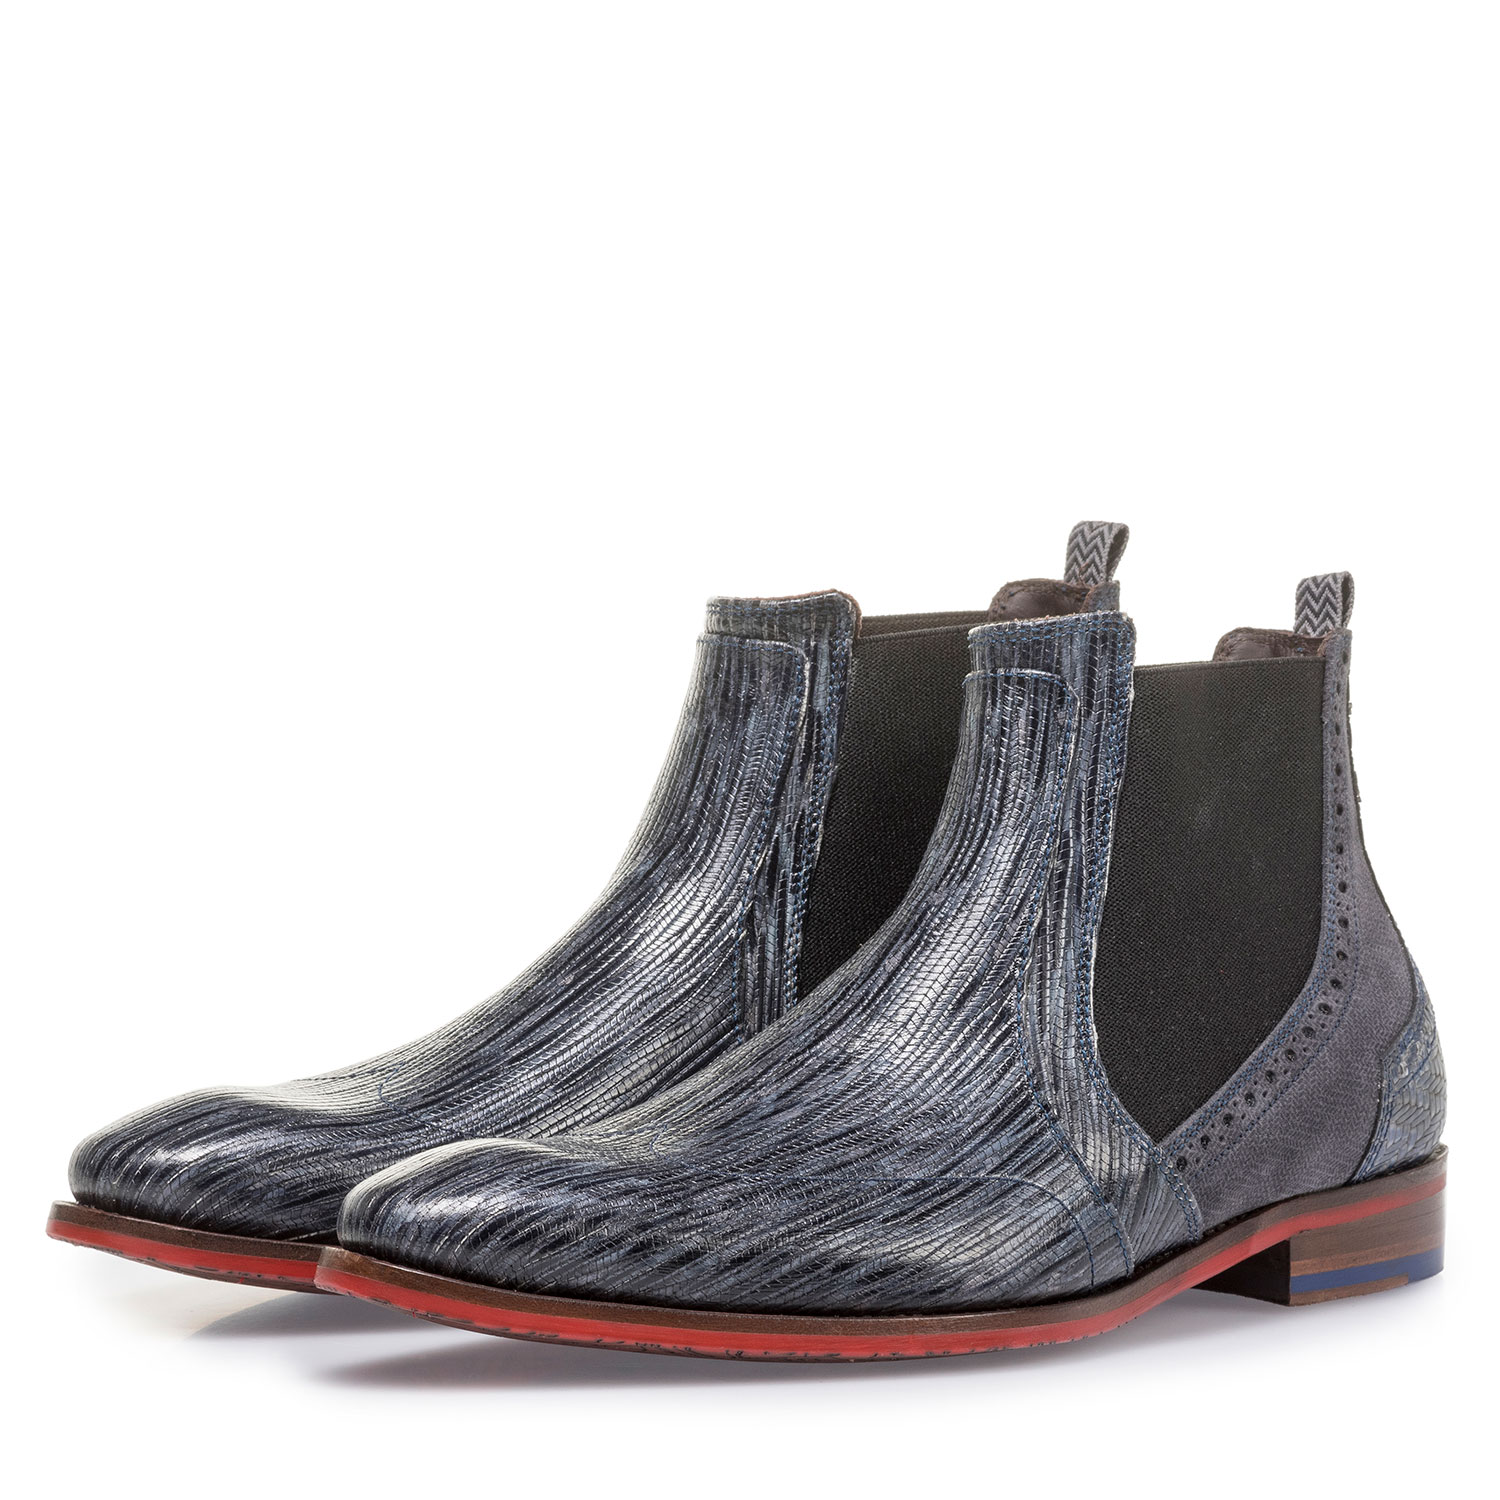 10455/12 - Grey and blue leather Chelsea boot with print